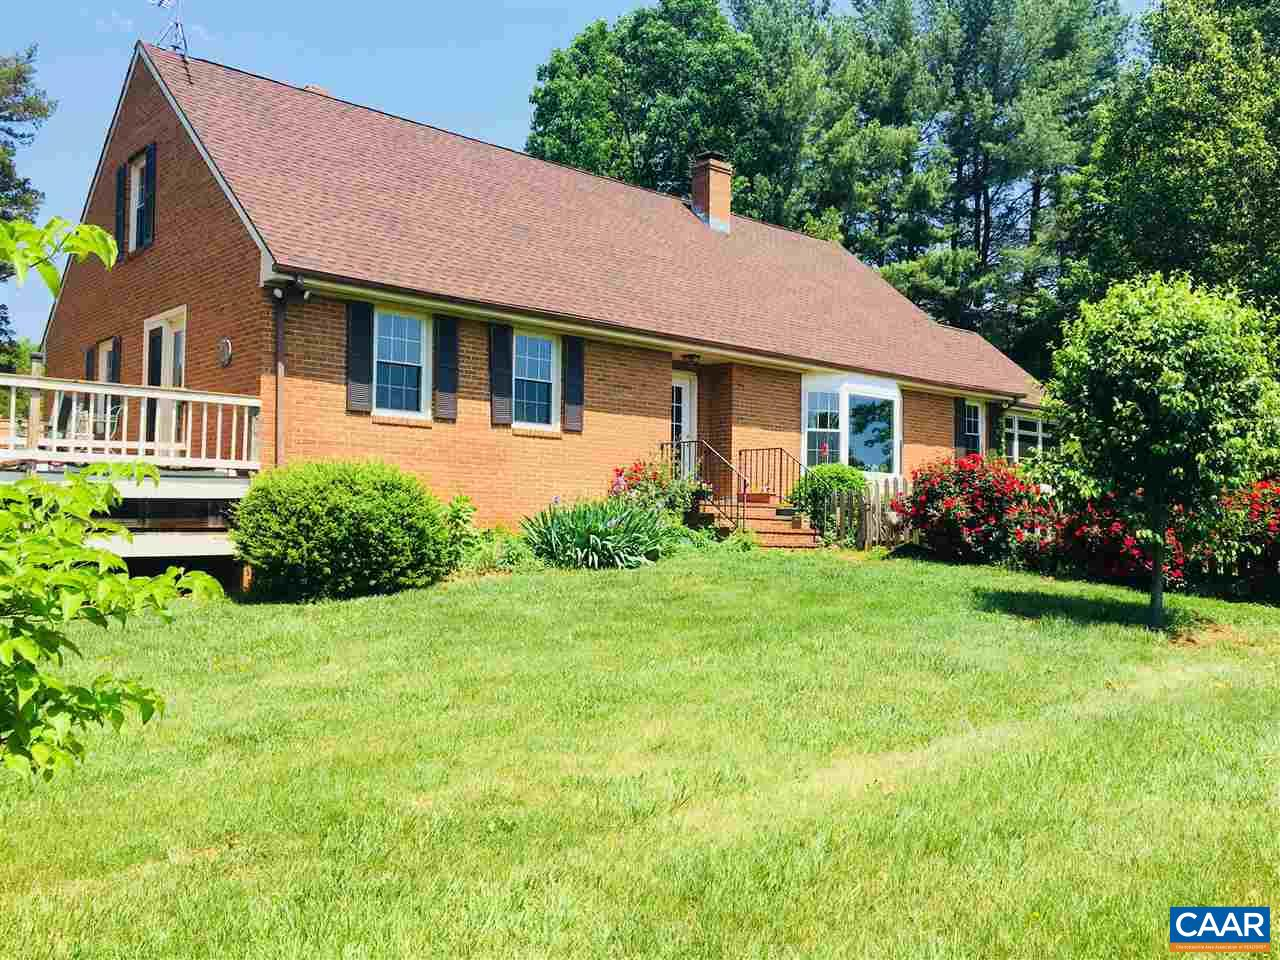 home for sale , MLS #576441, 5048 Scottsville Rd